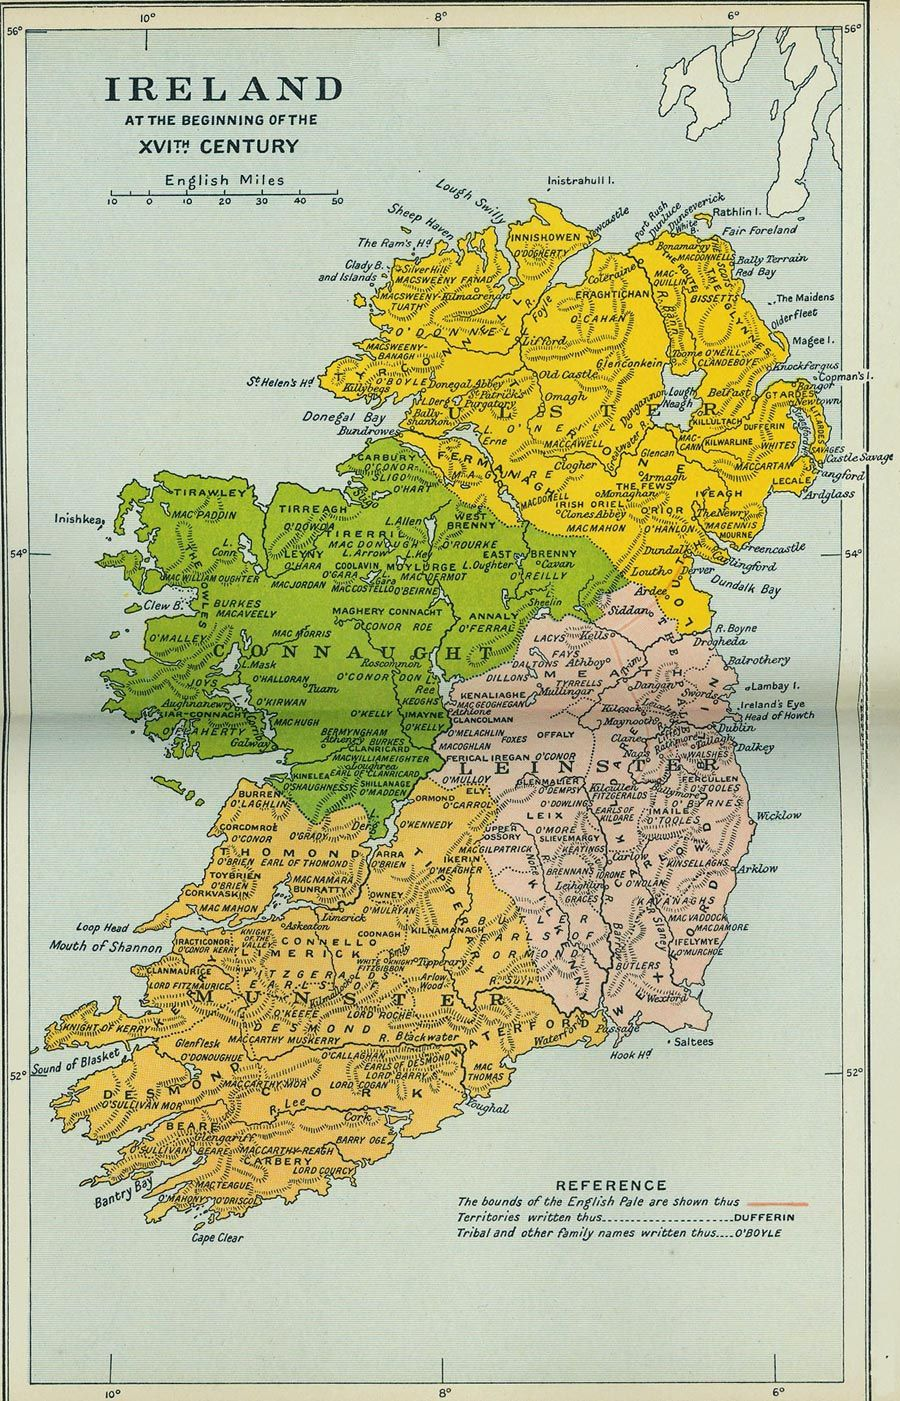 Map Showing Origin Of Irish Surnames Vintageold Maps - Ancestral origins us map